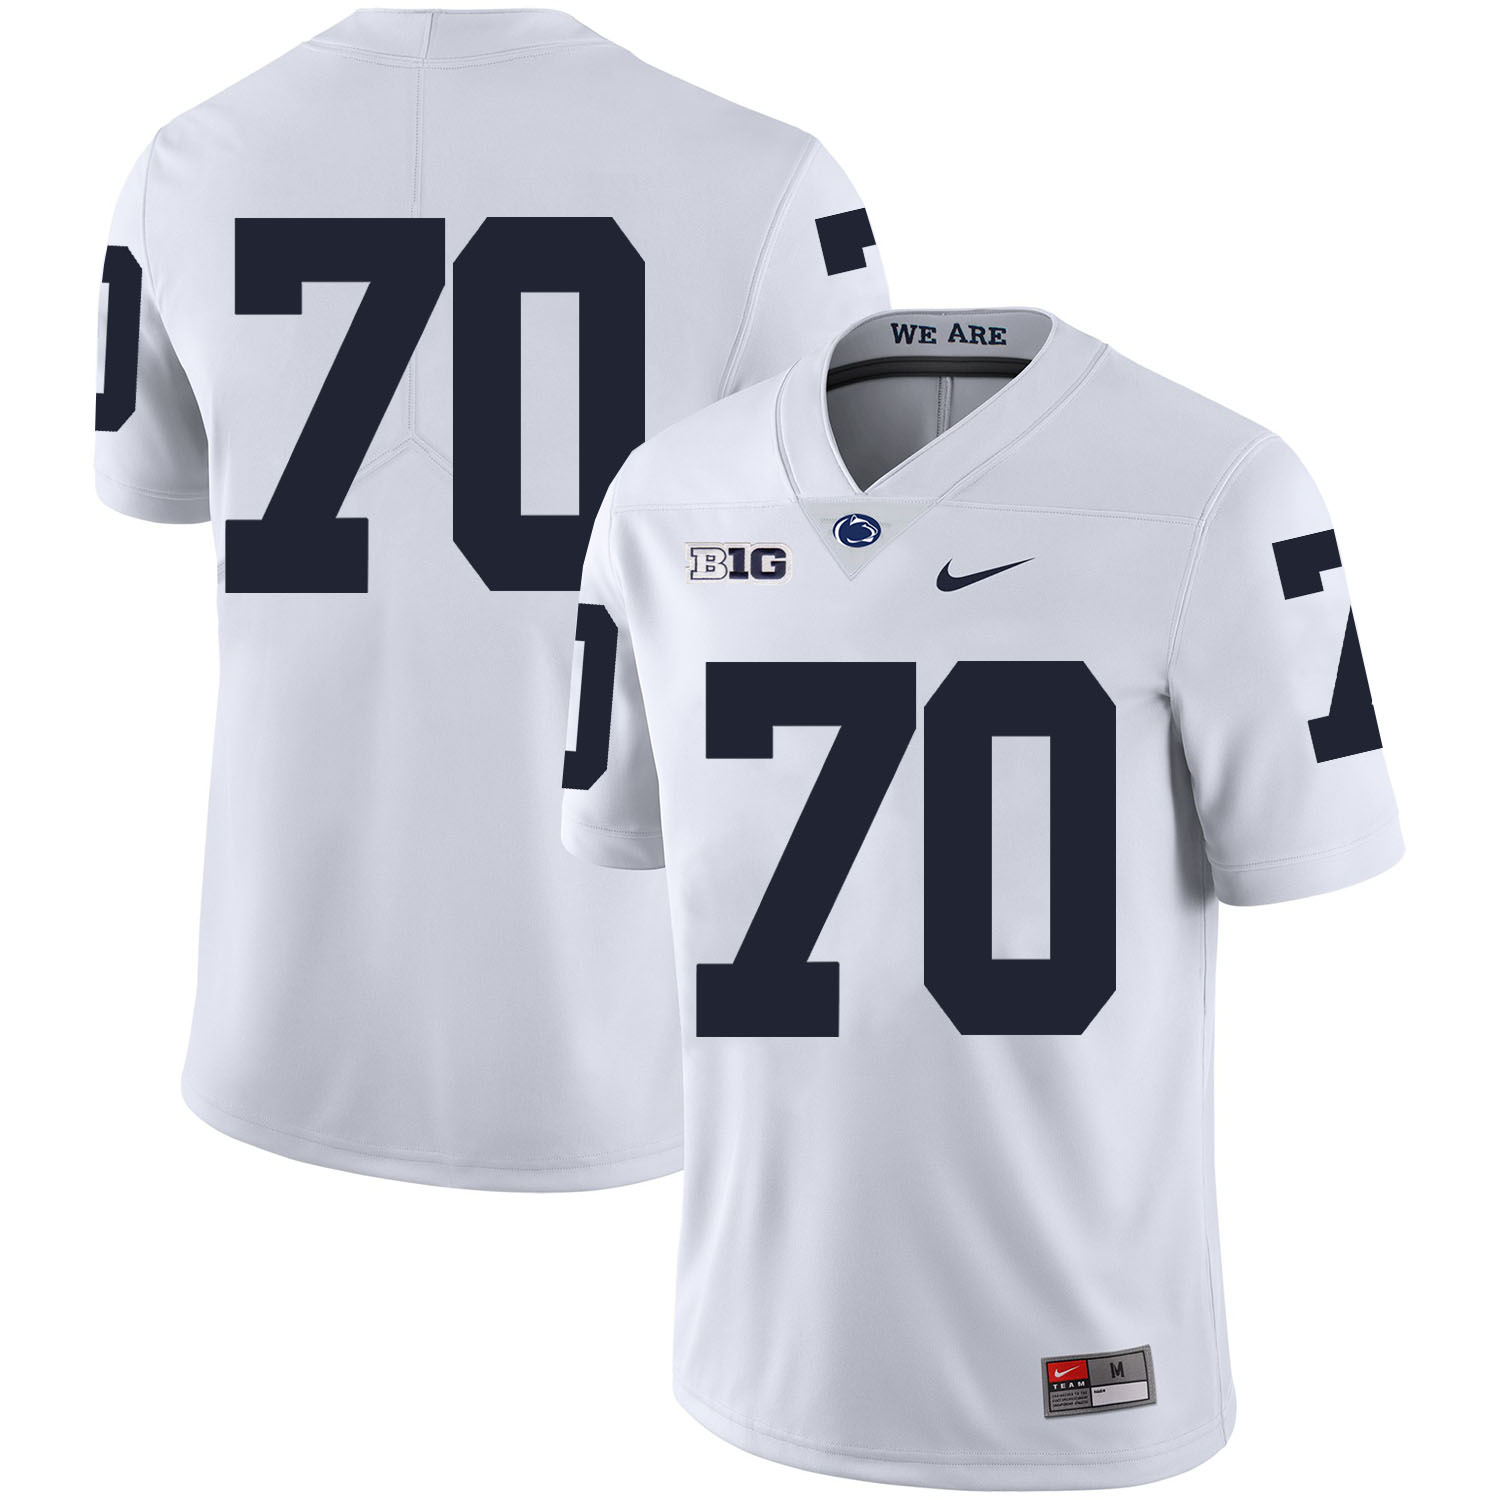 Penn State Nittany Lions 70 Mahon Blocks White Nike College Football Jersey